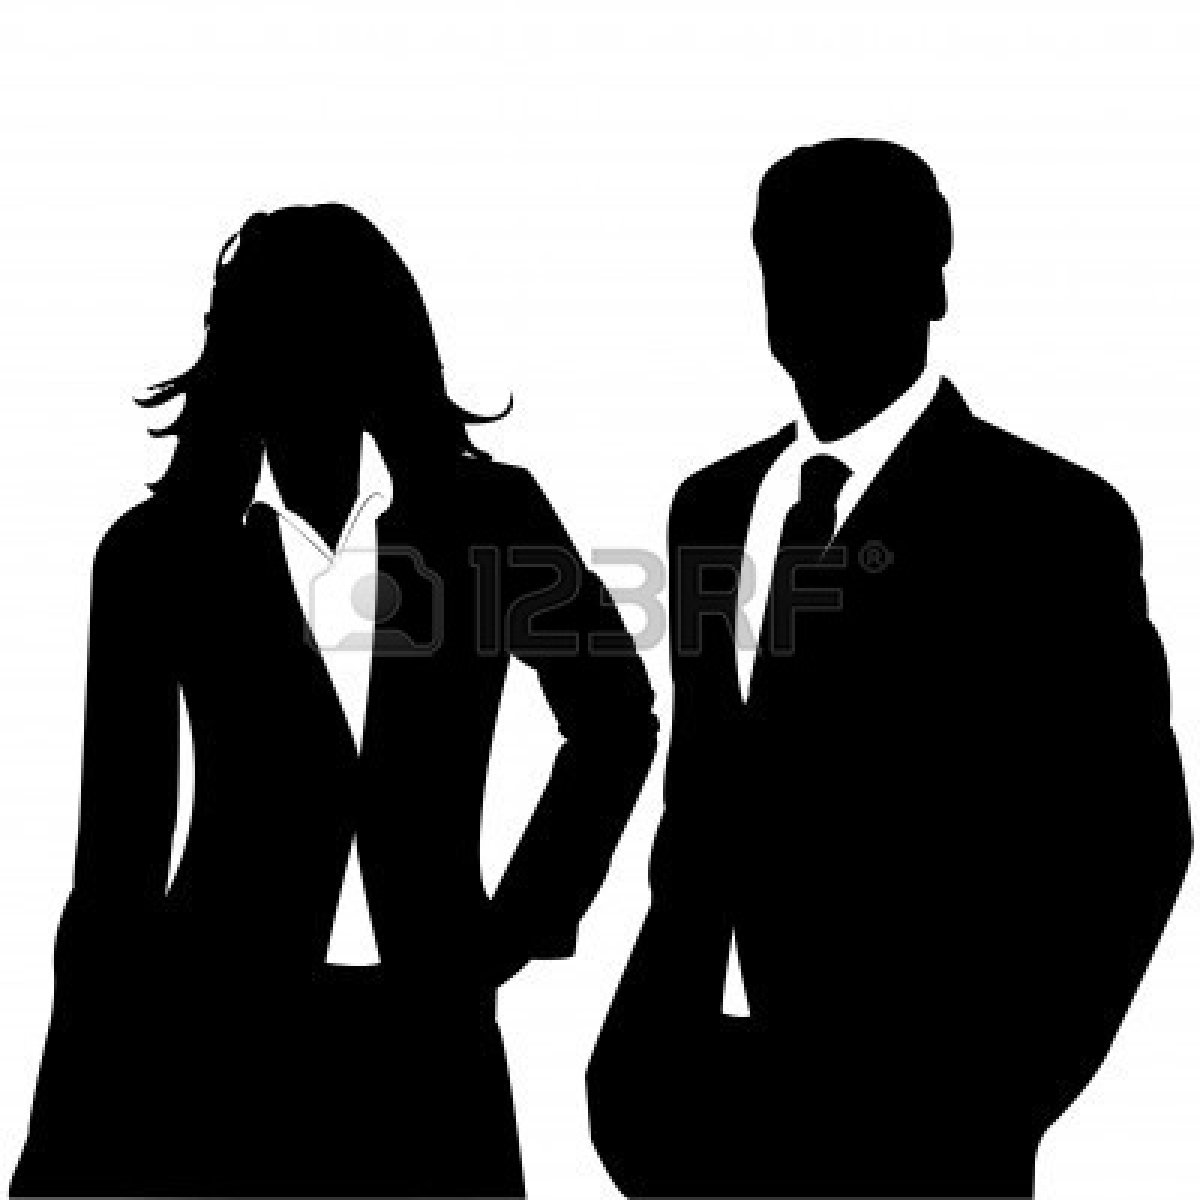 Shaow clipart business person Silhouette business%20person%20silhouette People Clipart Clipart